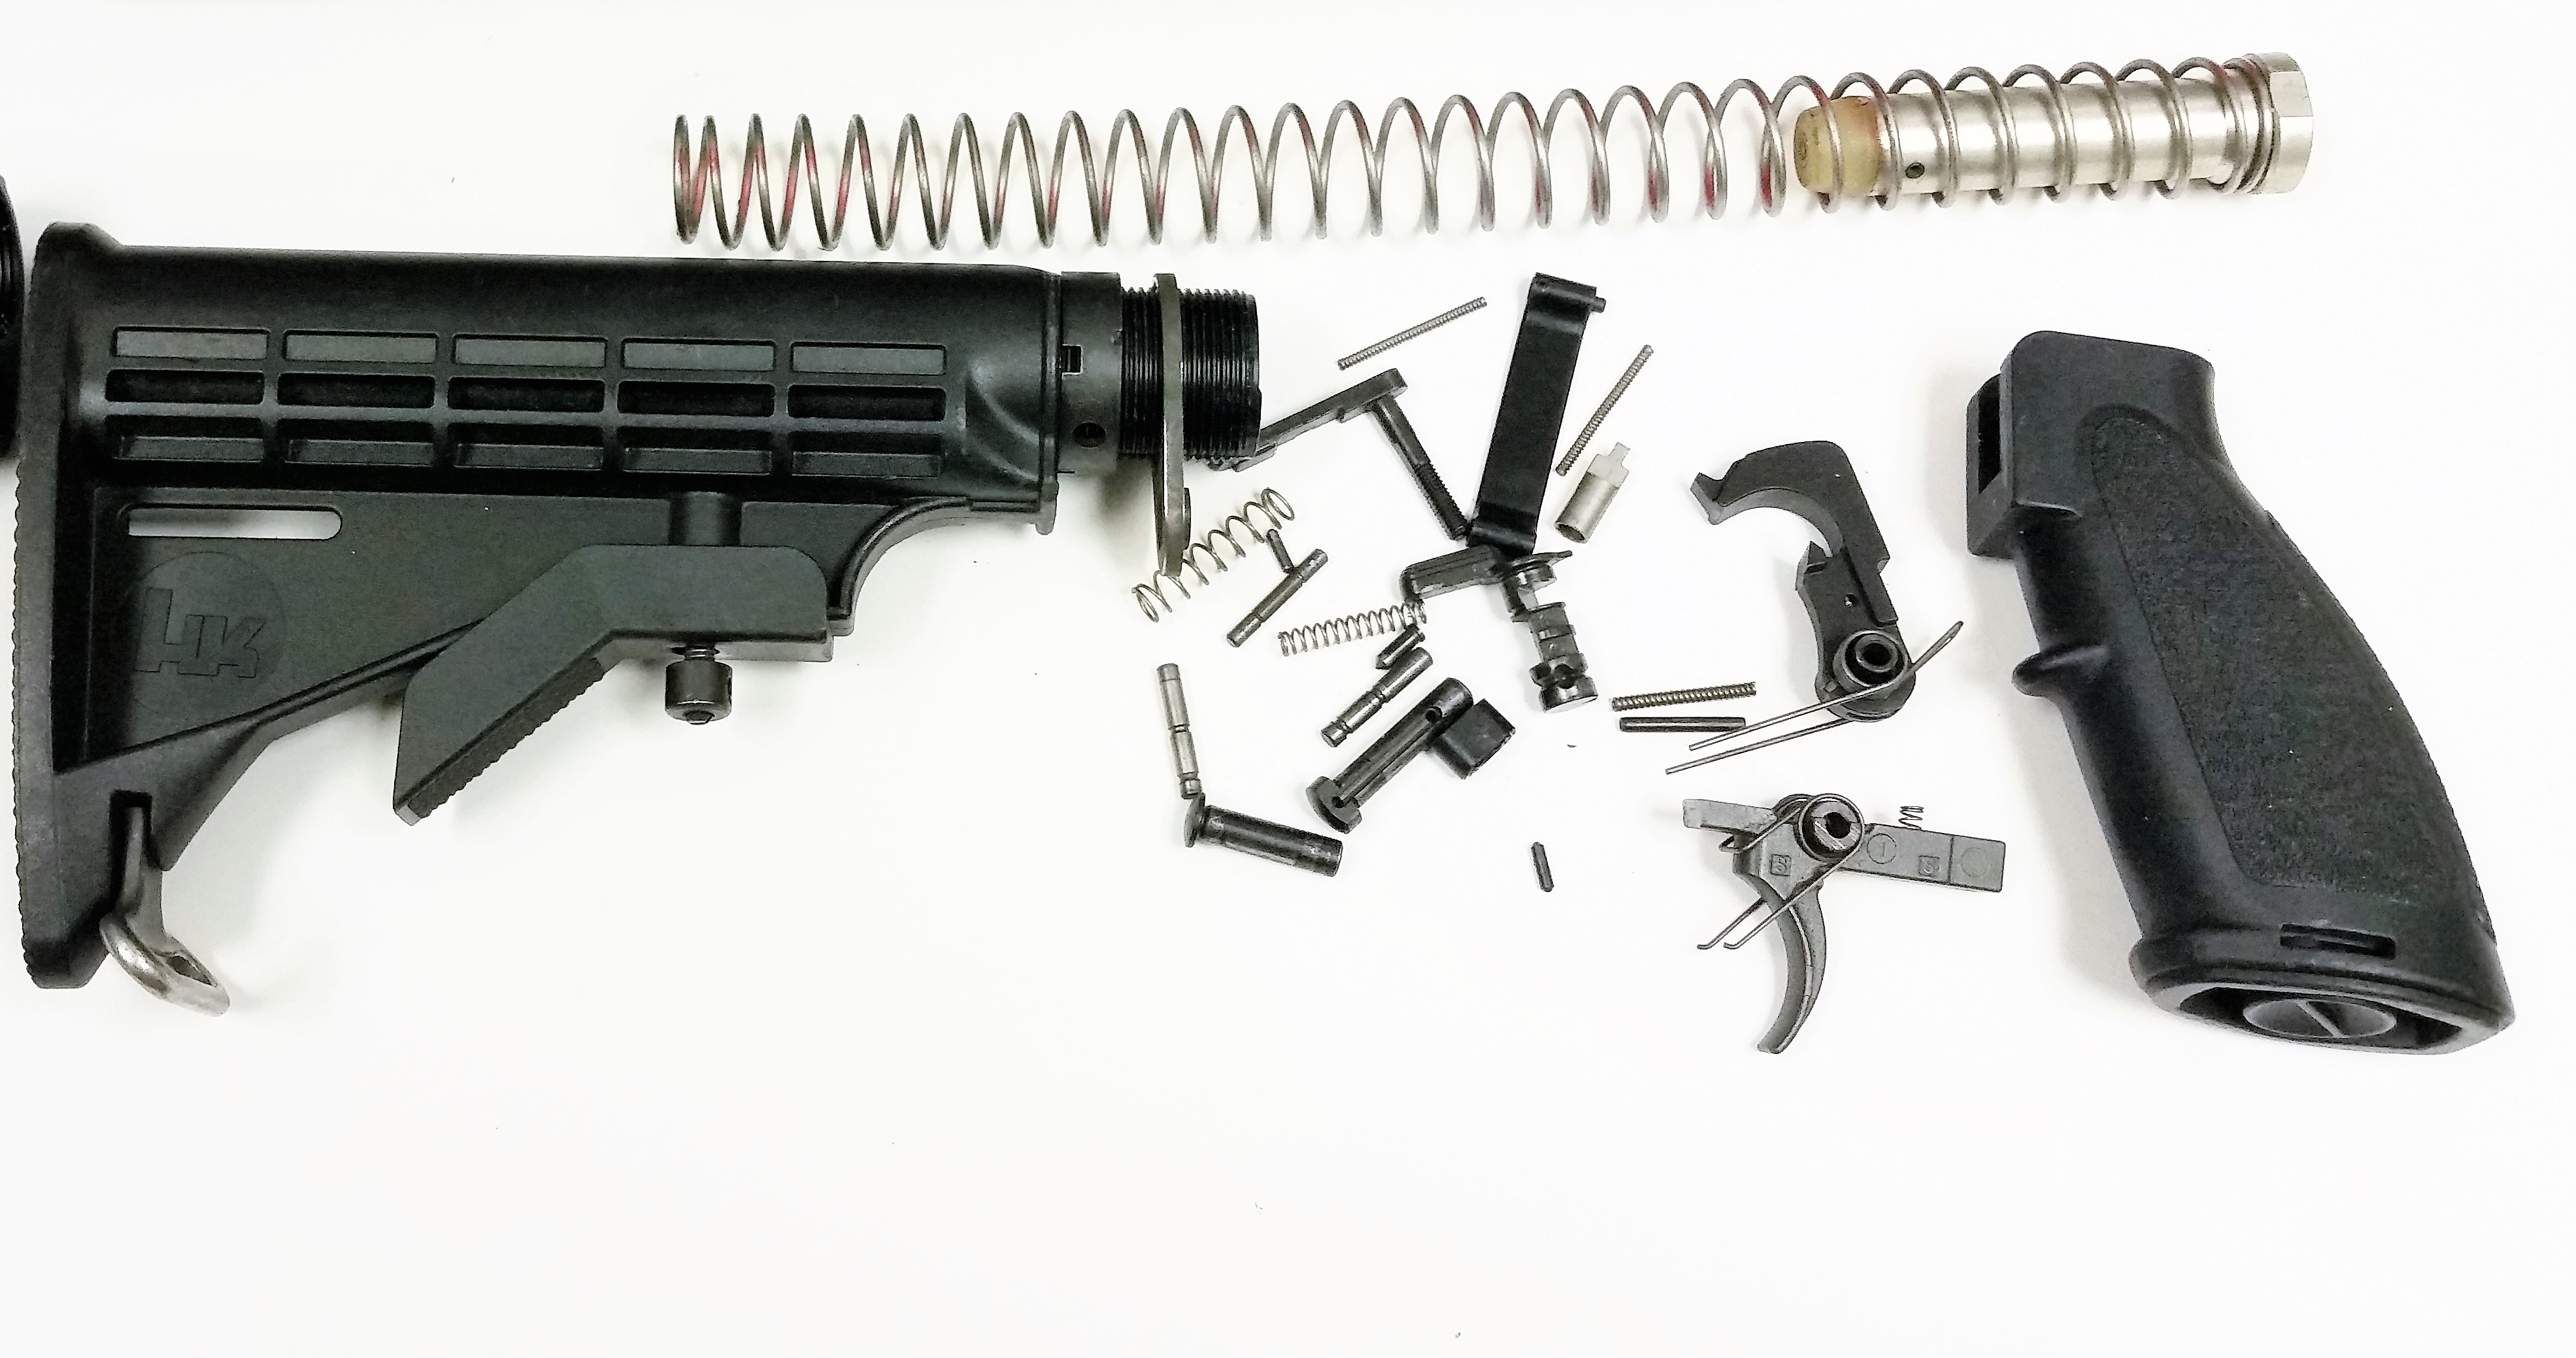 Hk G3 Lower Receiver – HD Wallpapers